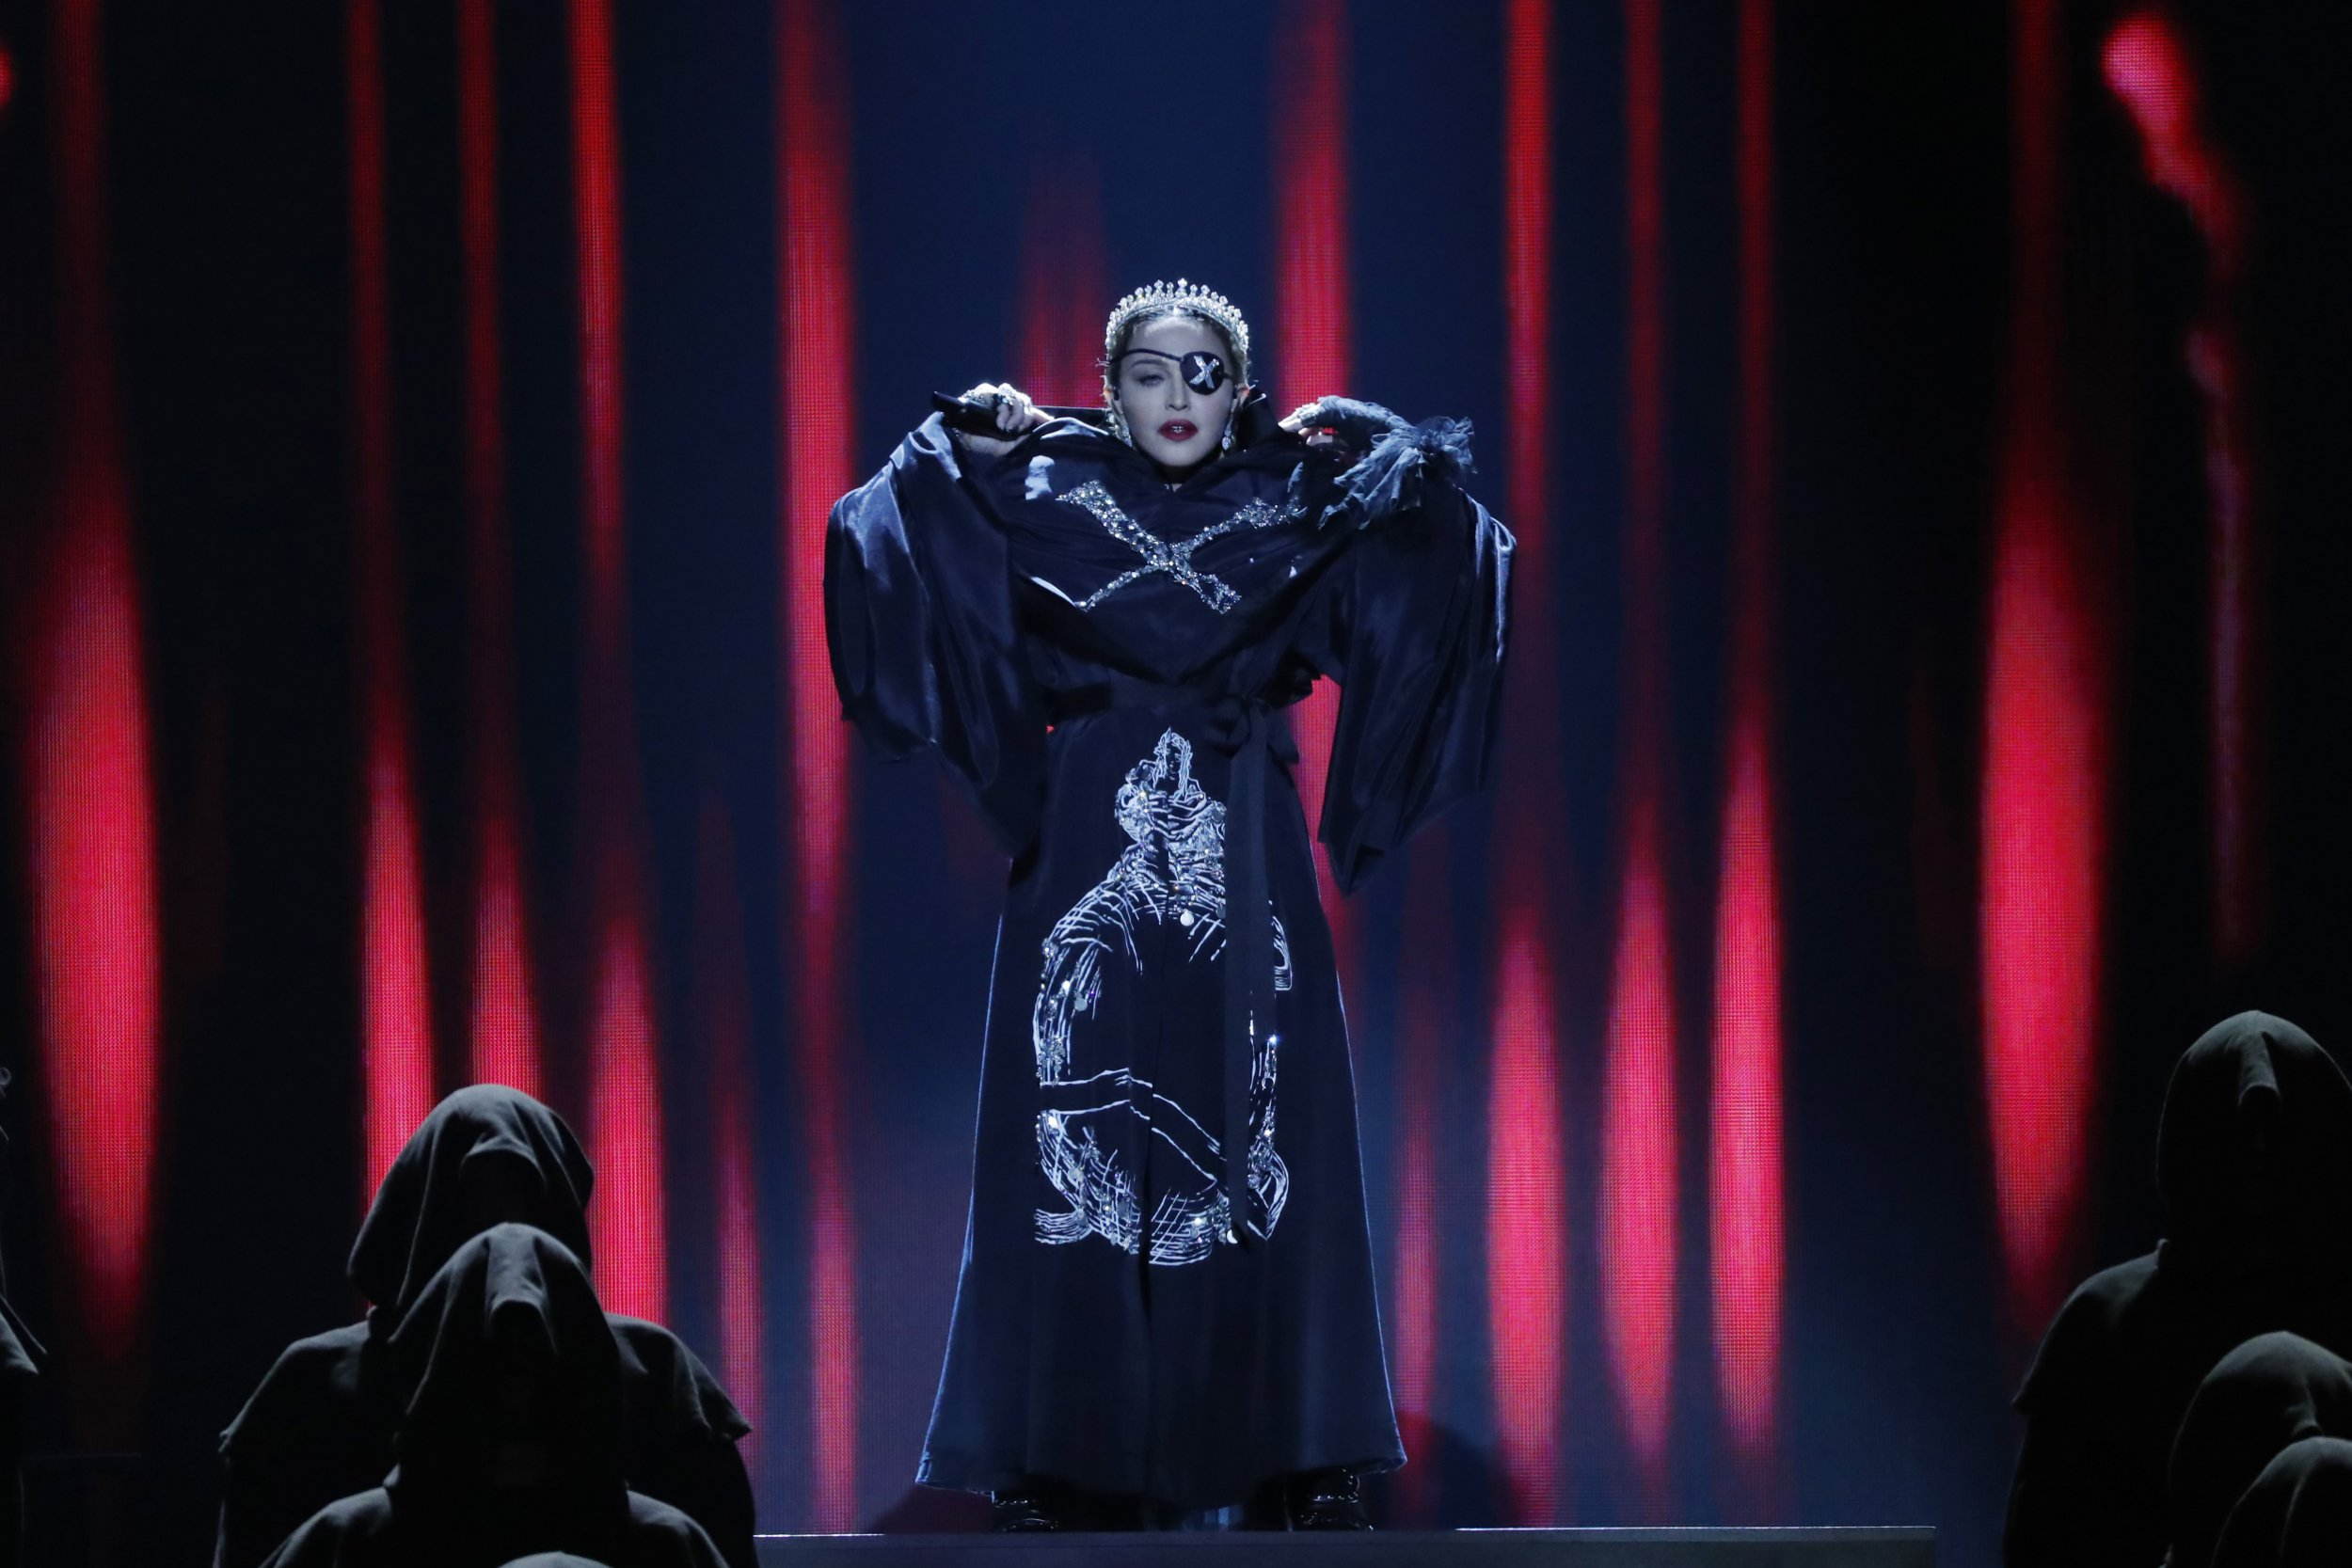 What songs did Madonna perform at Eurovision and what is her new album?